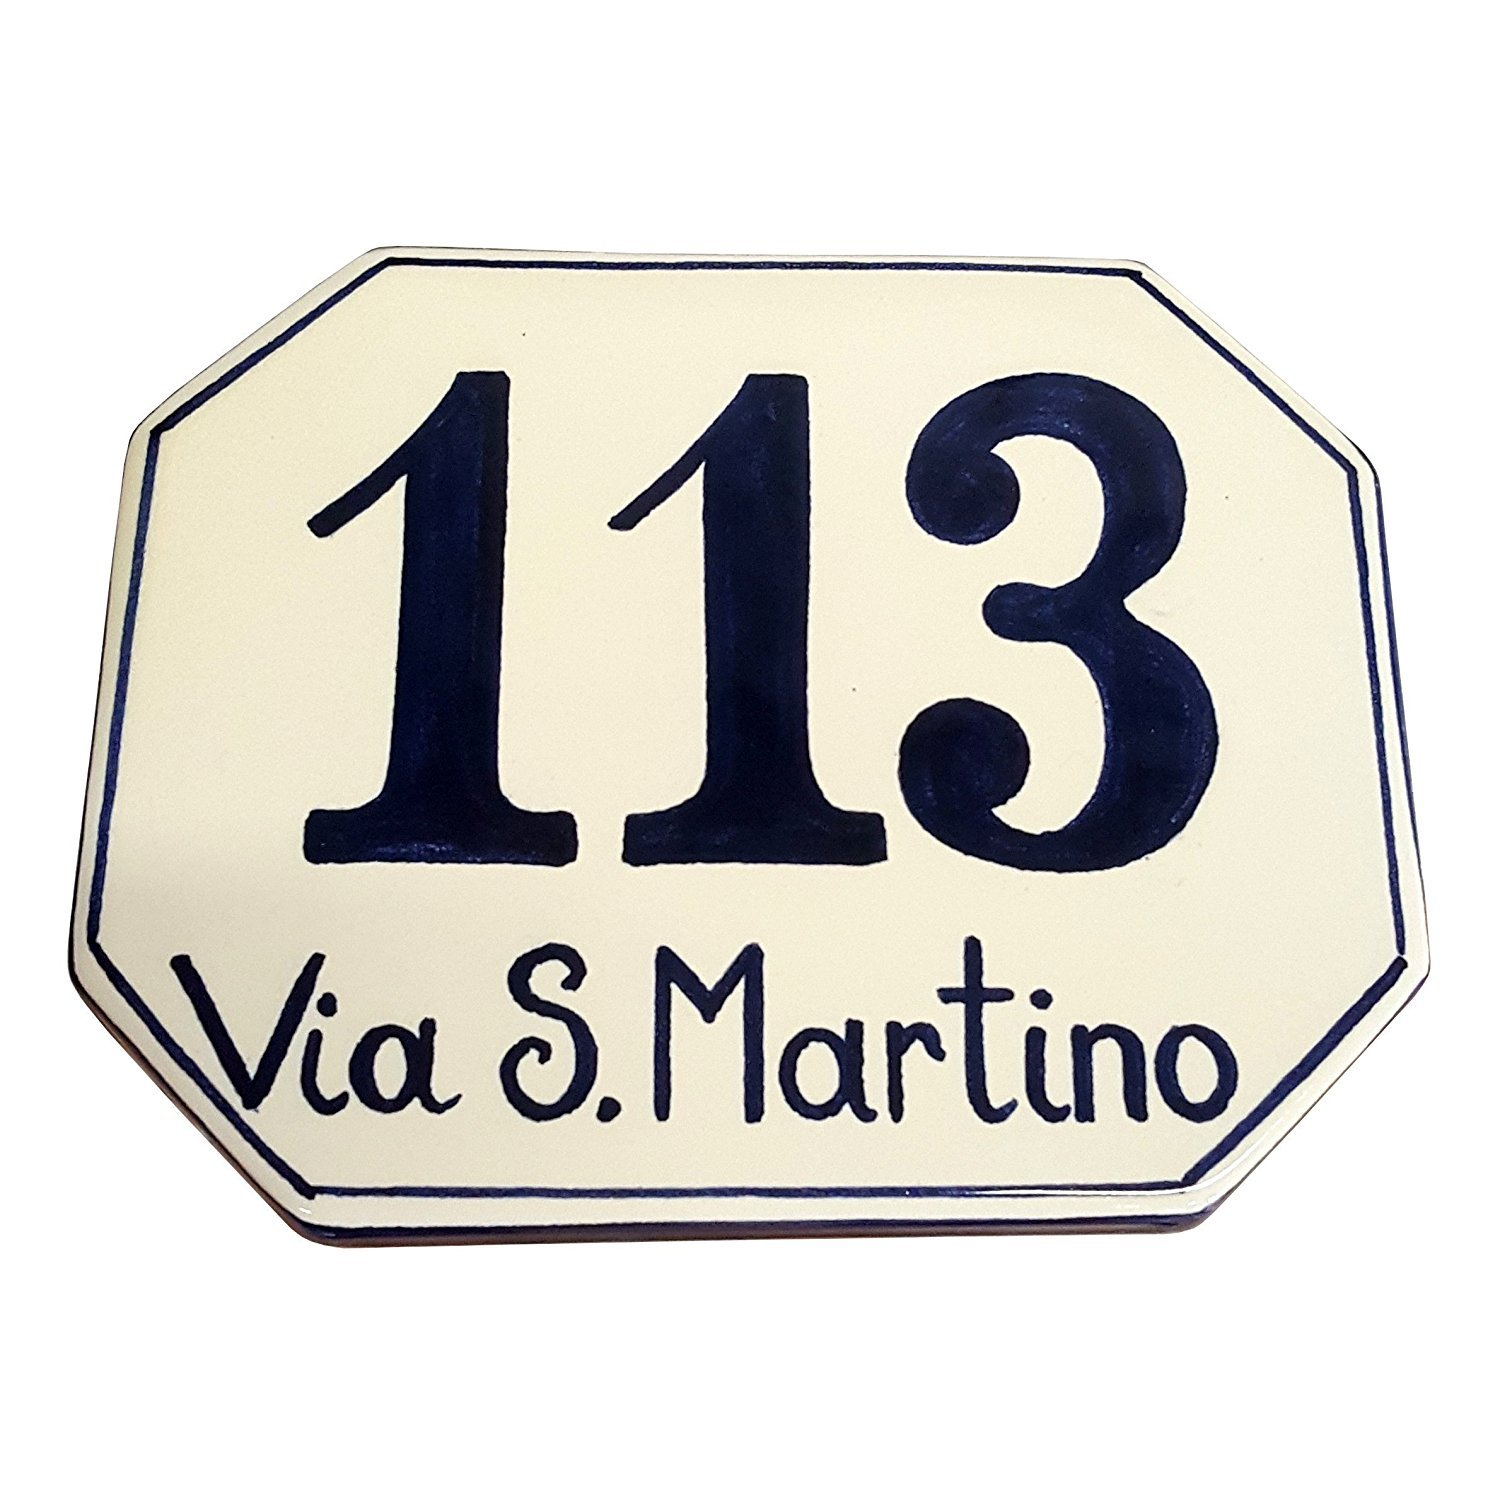 Amazon ceramiche darte parrini italian ceramic art pottery amazon ceramiche darte parrini italian ceramic art pottery tile custom house number civic address plaques decorated blue hand painted made in italy dailygadgetfo Choice Image